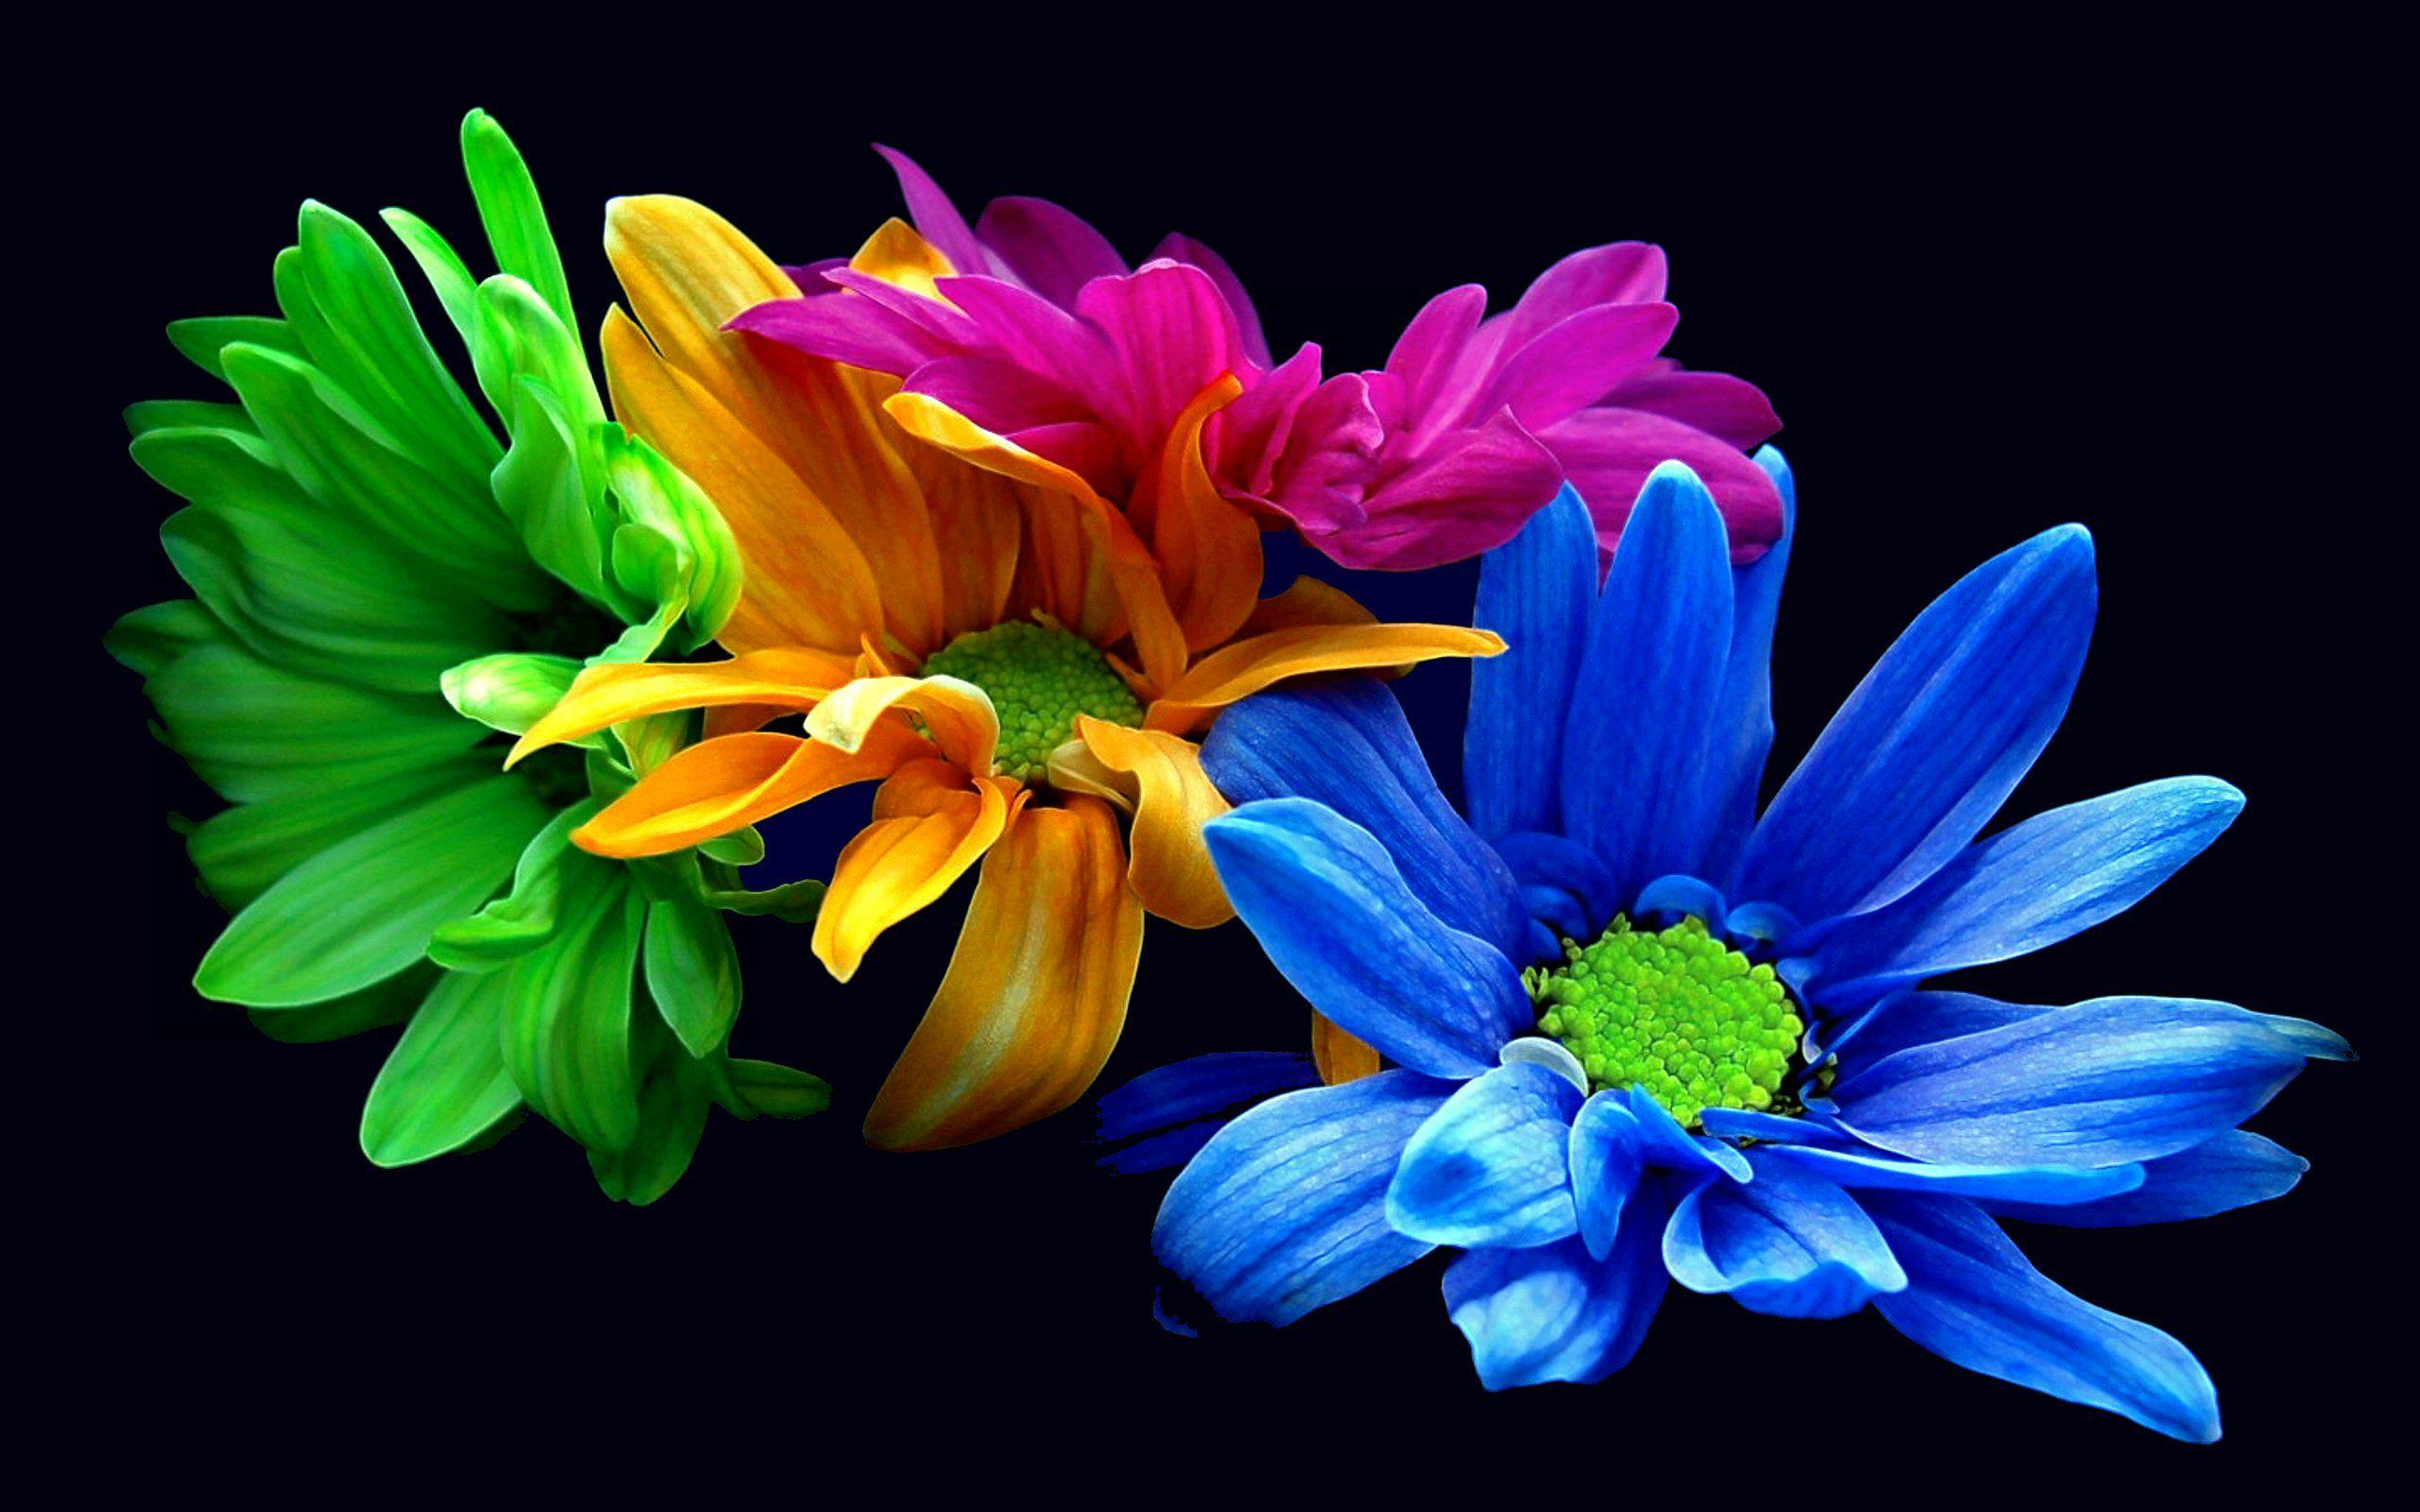 Colorful Flower HD Wallpapers - Wallpaper Cave